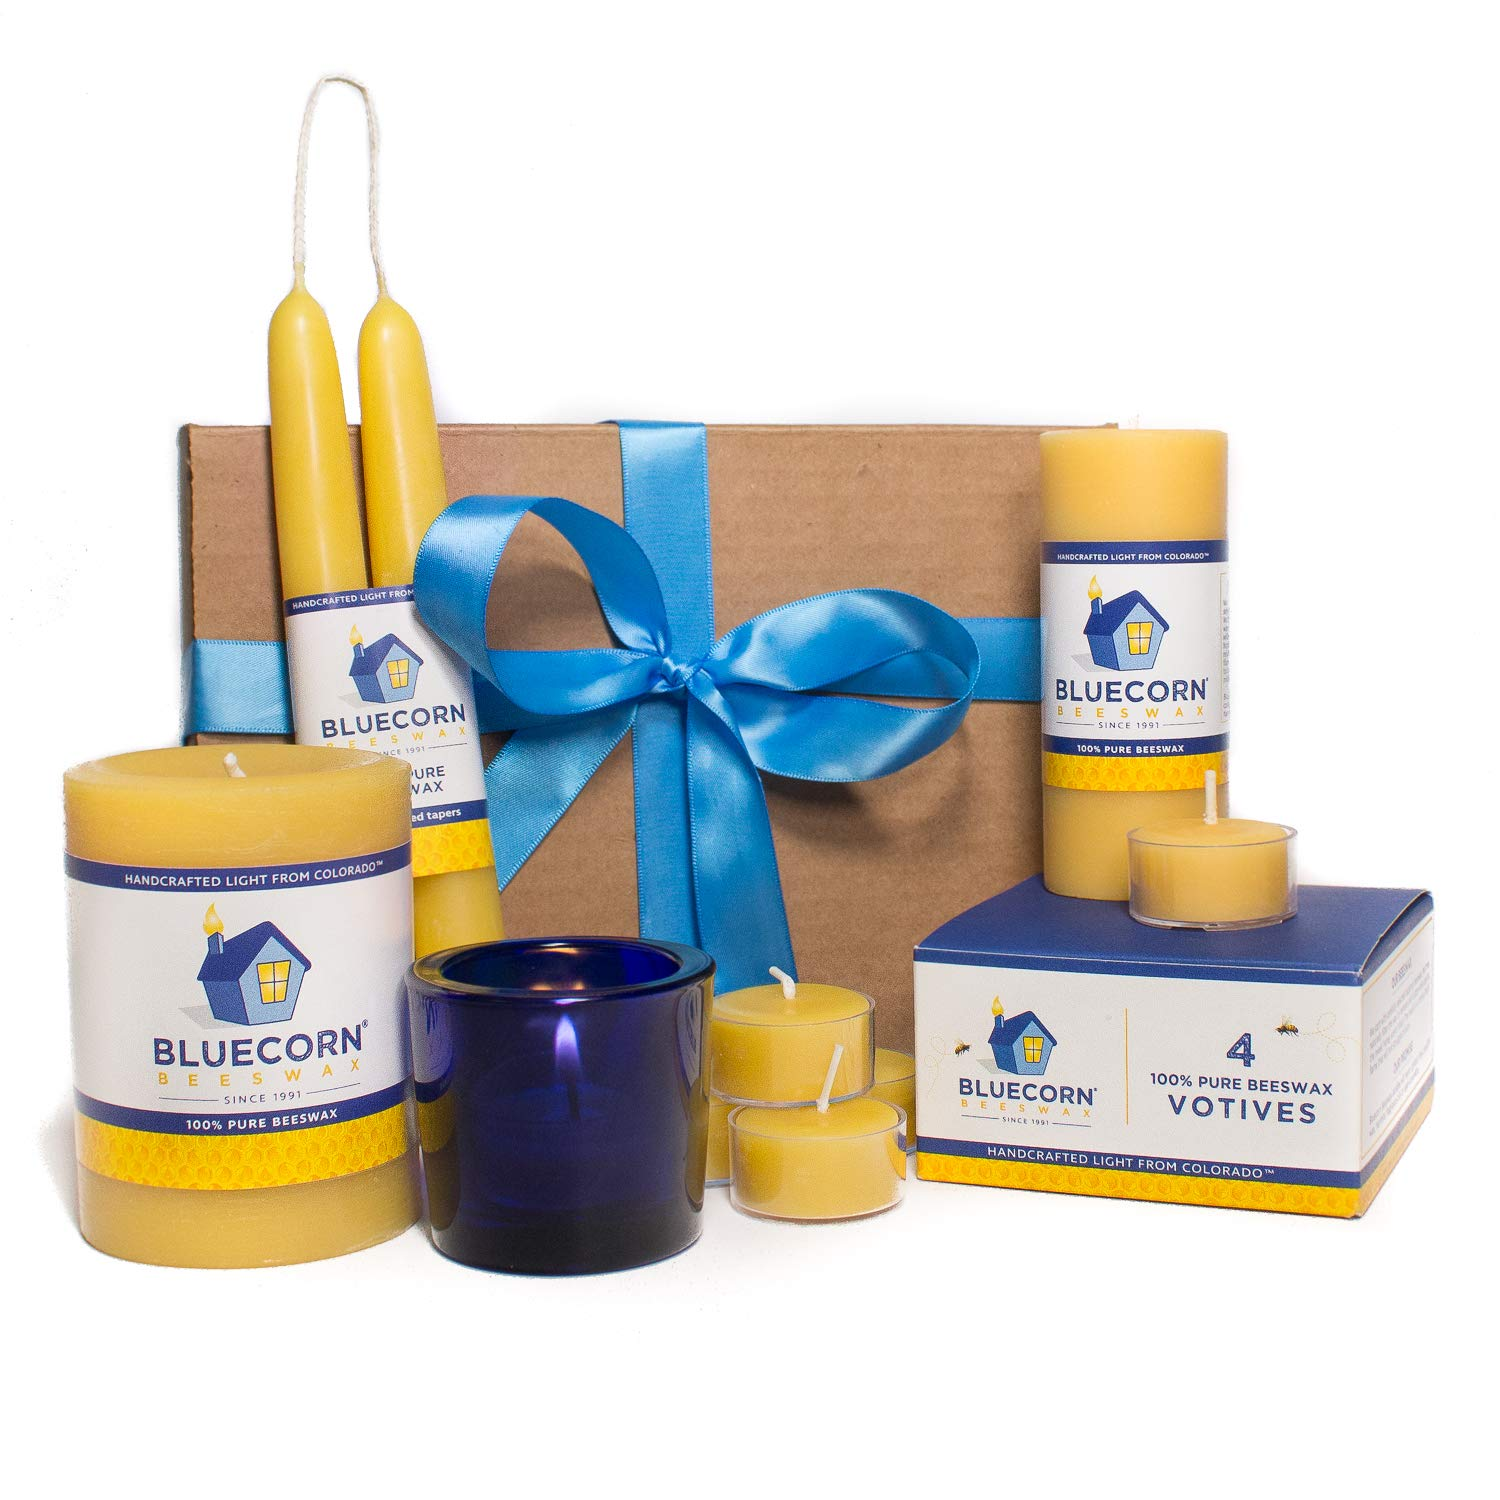 Bluecorn Beeswax Raw Beeswax Candle Gift Set (Small)